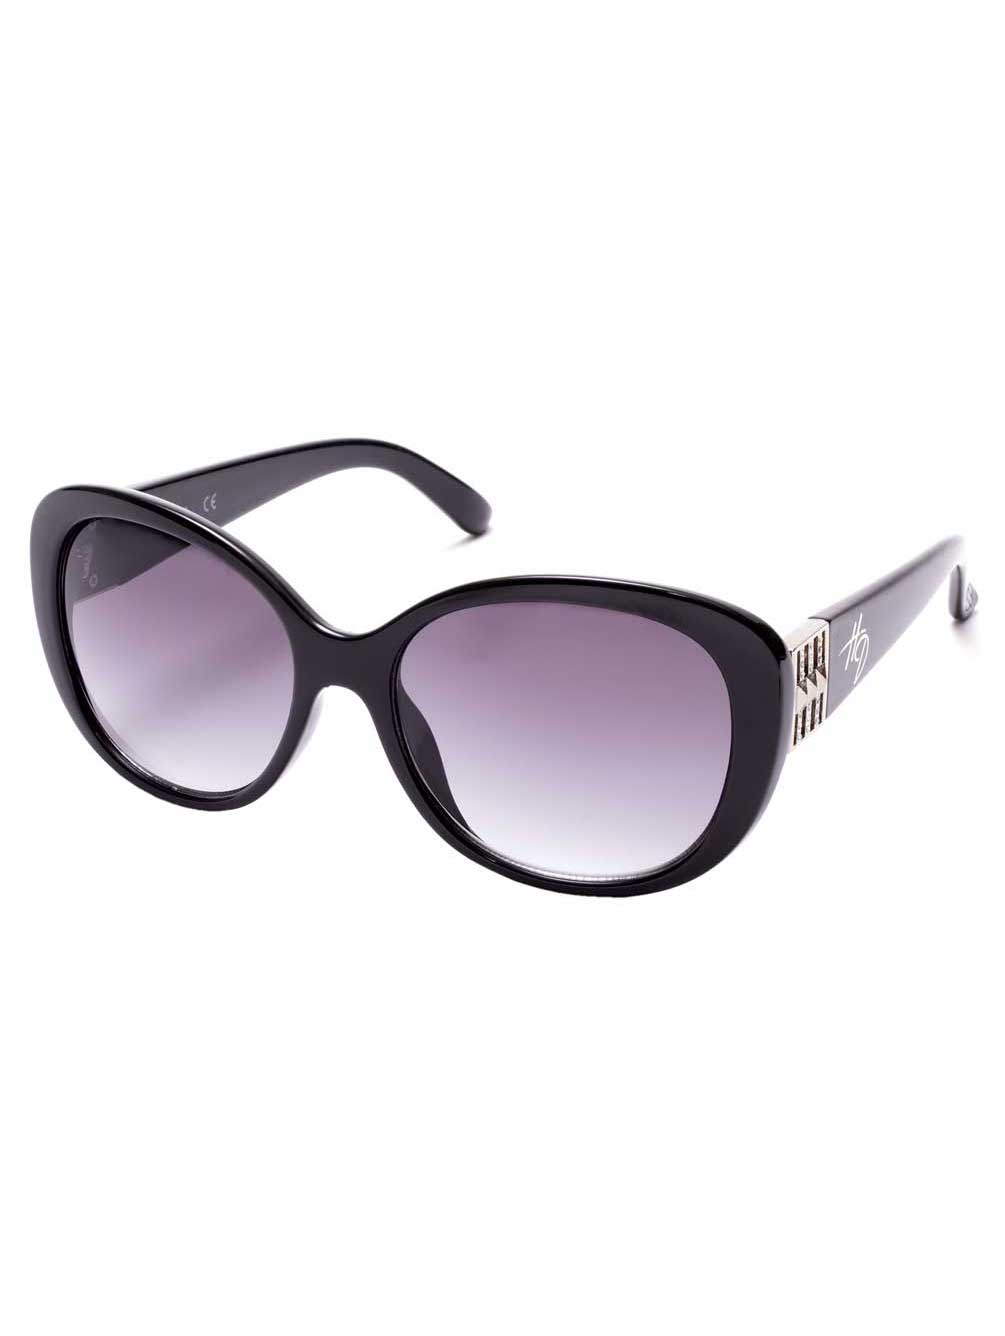 Shiny Black//Smoke Lenses Harley-Davidson Women/'s Oversized Butterfly Sunglasses